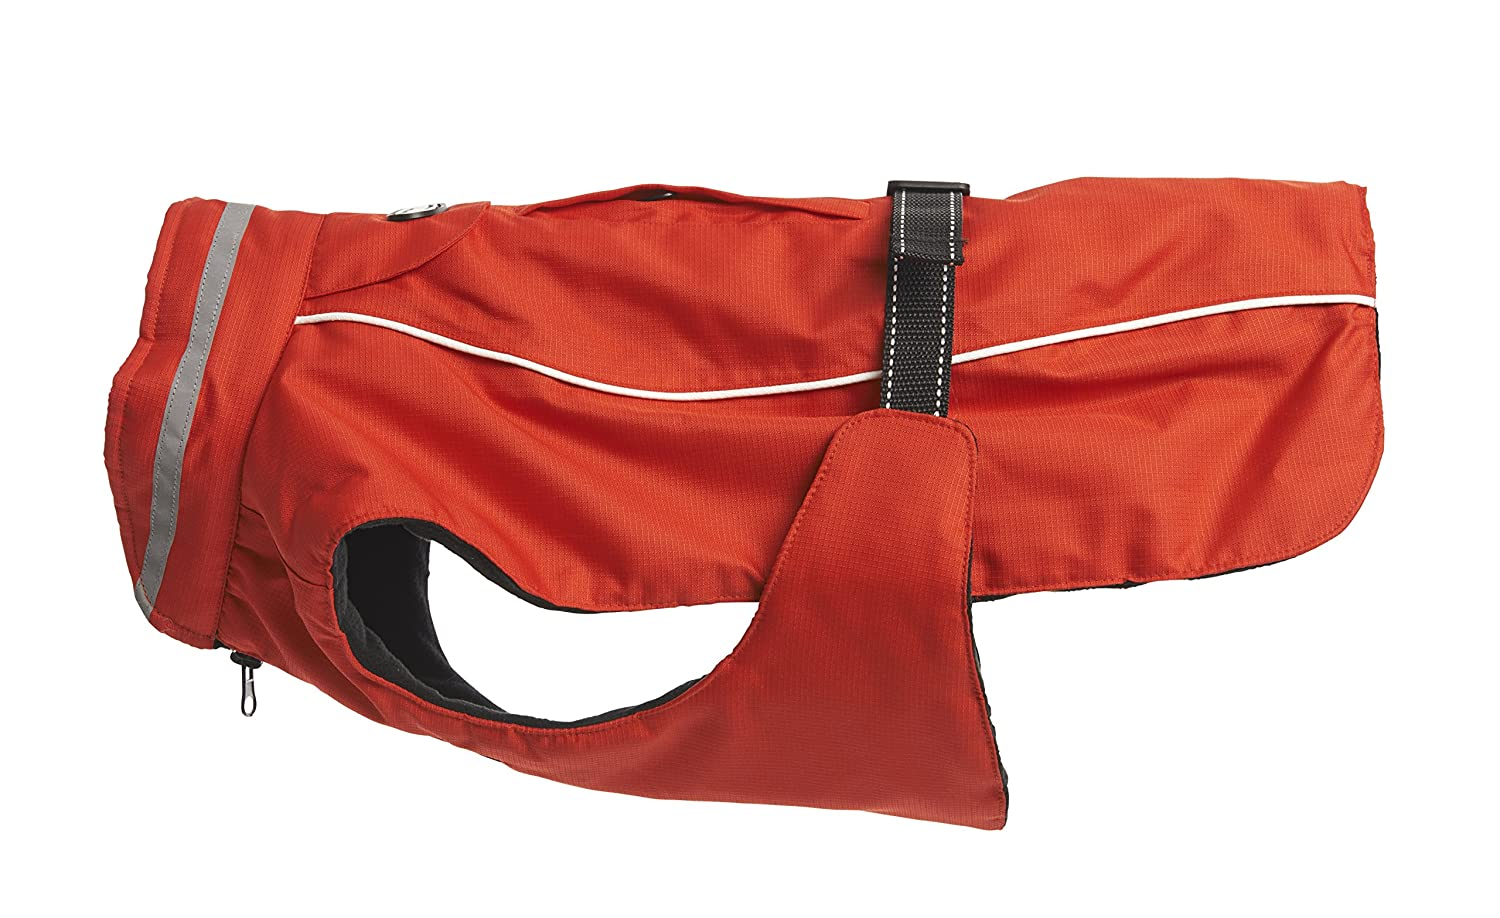 Kerman Kruuse Buster Outdoor Wear Winter Jacket Red Chili X-Large A.C Pet Products KR284695